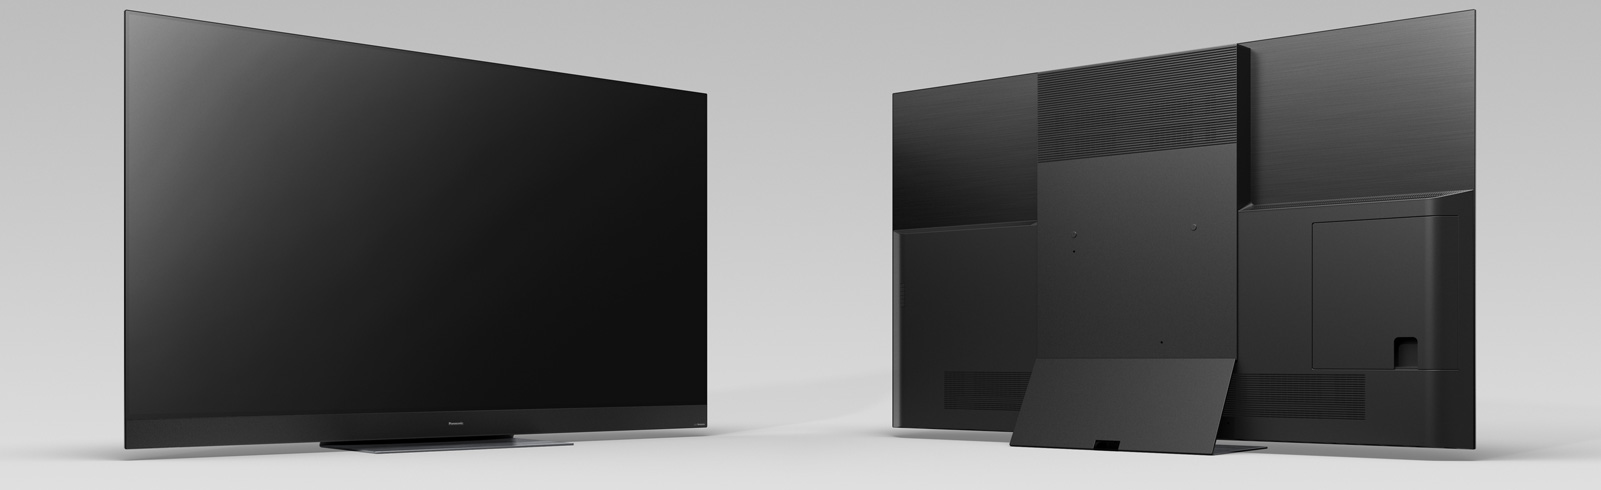 The 2019 OLED TVs from Panasonic to arrive with Netflix Calibrated Mode